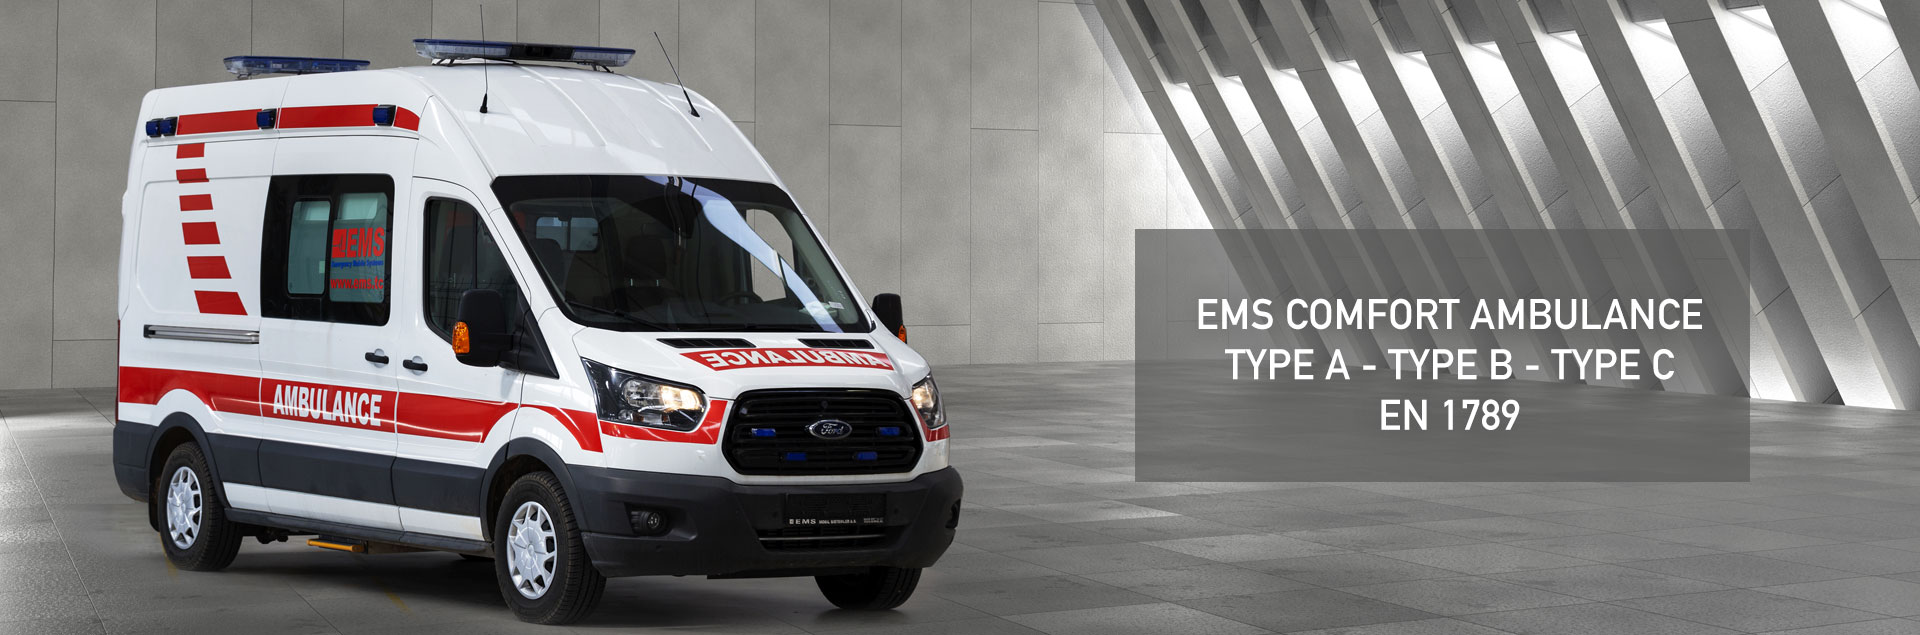 EMS Comfort Type Ambulance